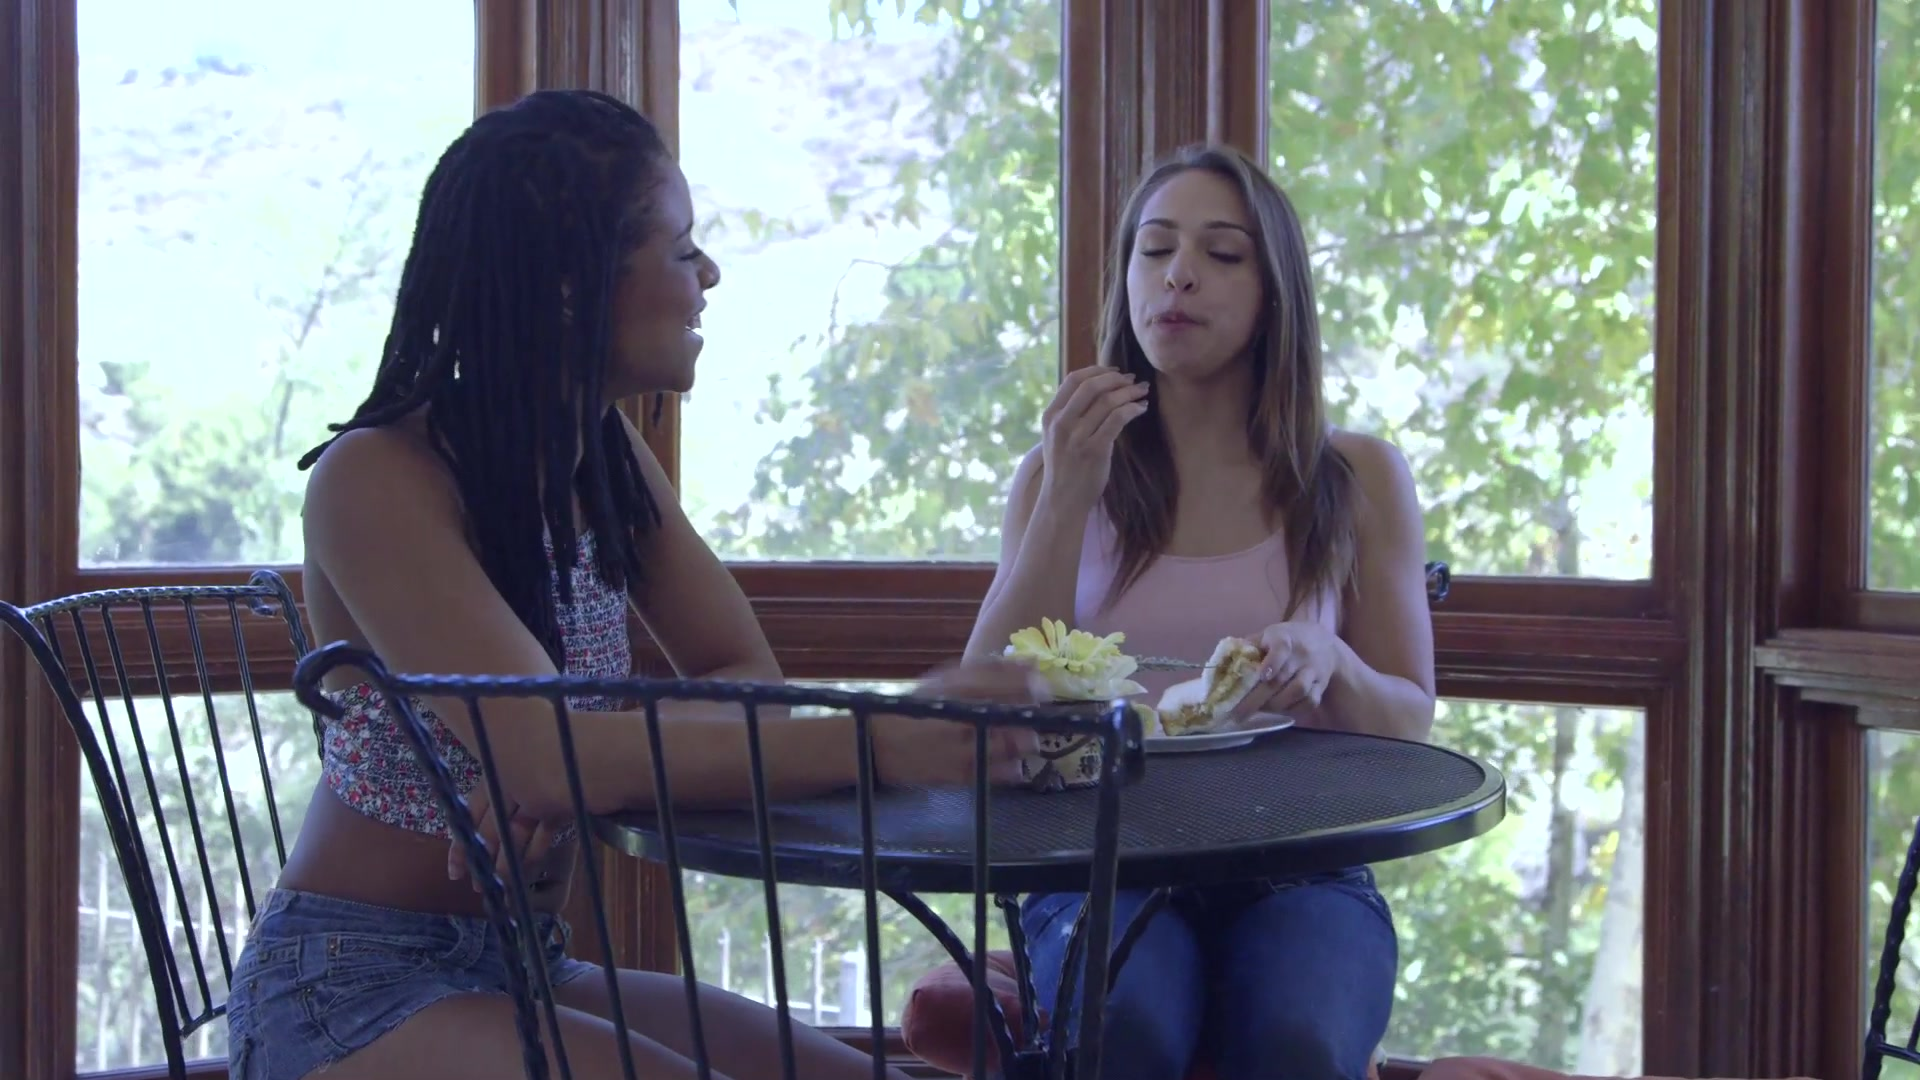 Scene with Kira Noir and Sara Luvv - image 4 out of 20